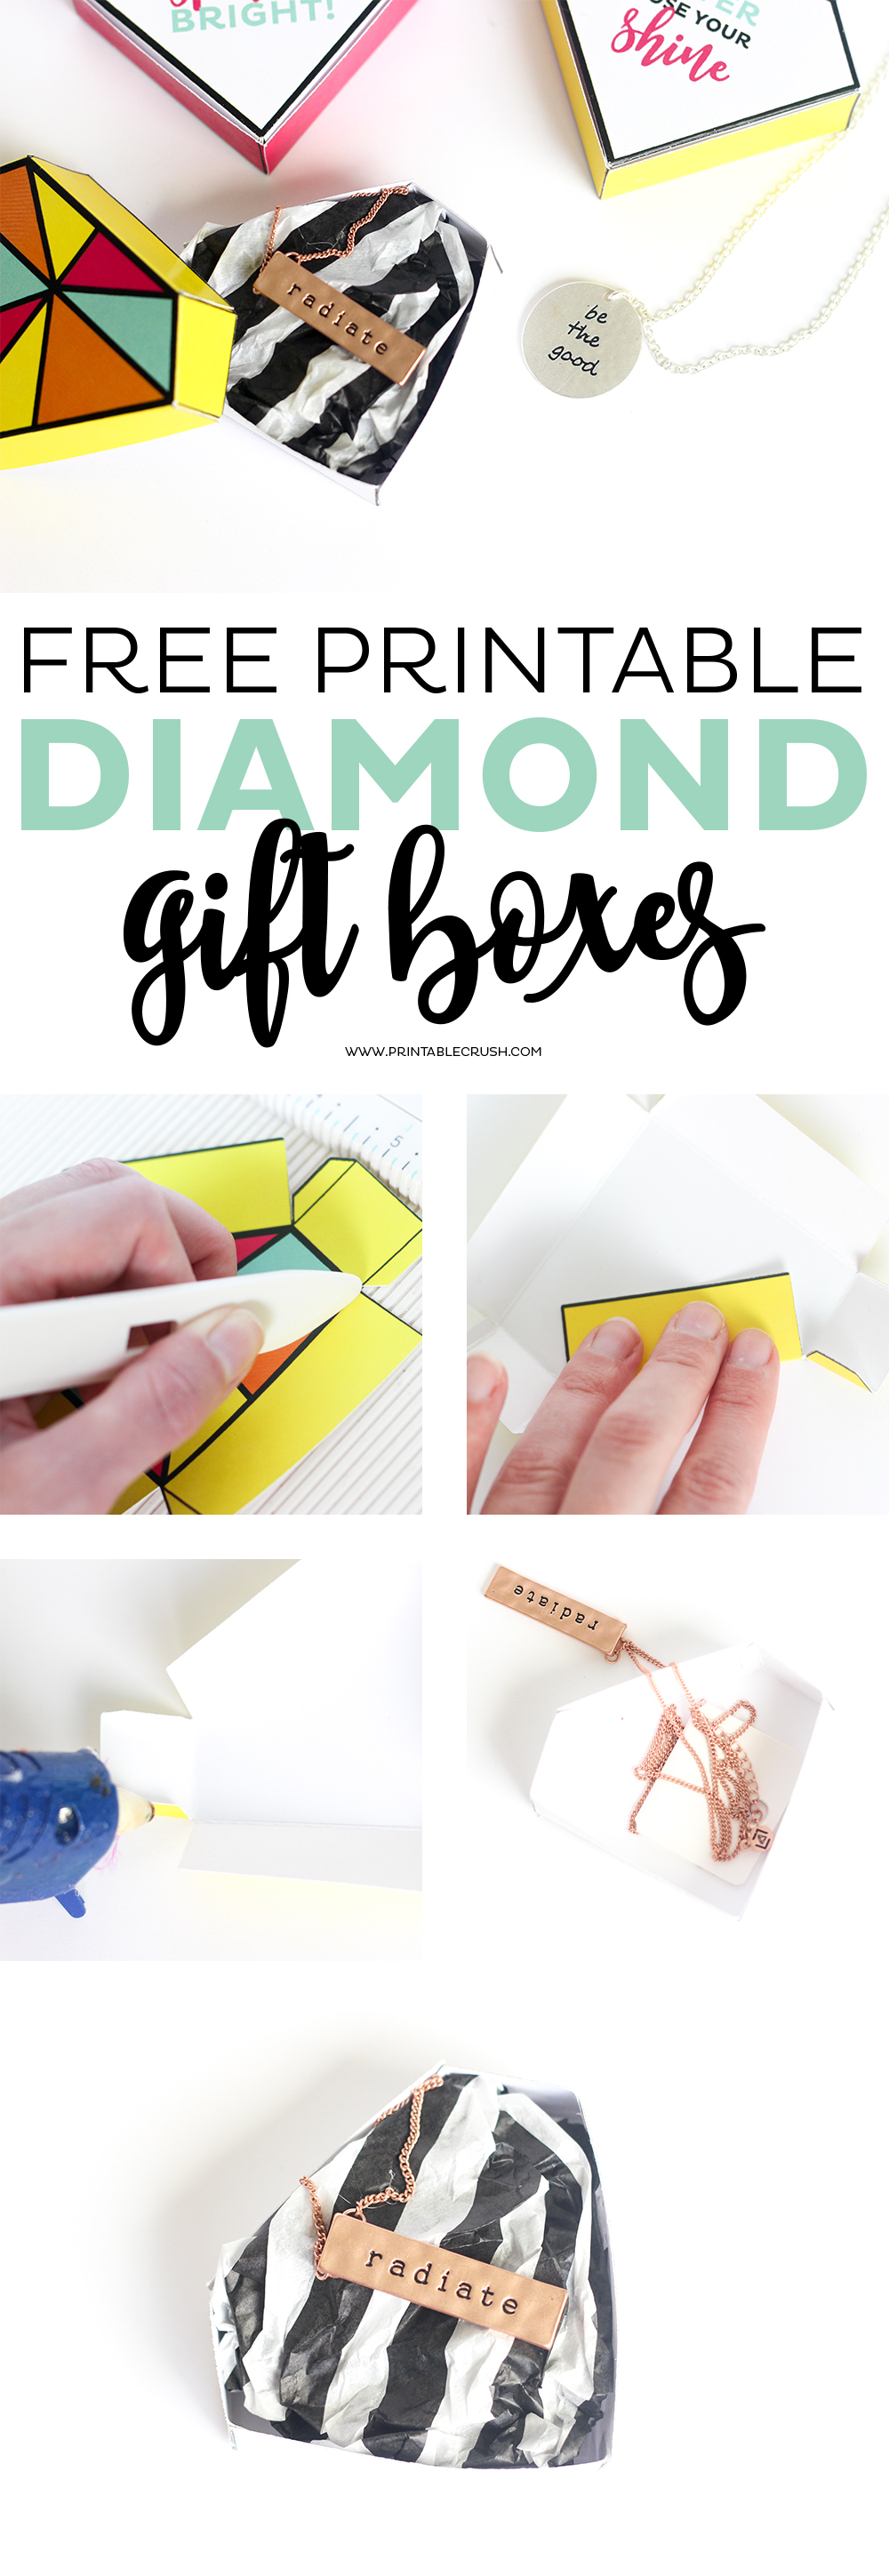 FREE Printable Diamond Gift Boxes-1 copy